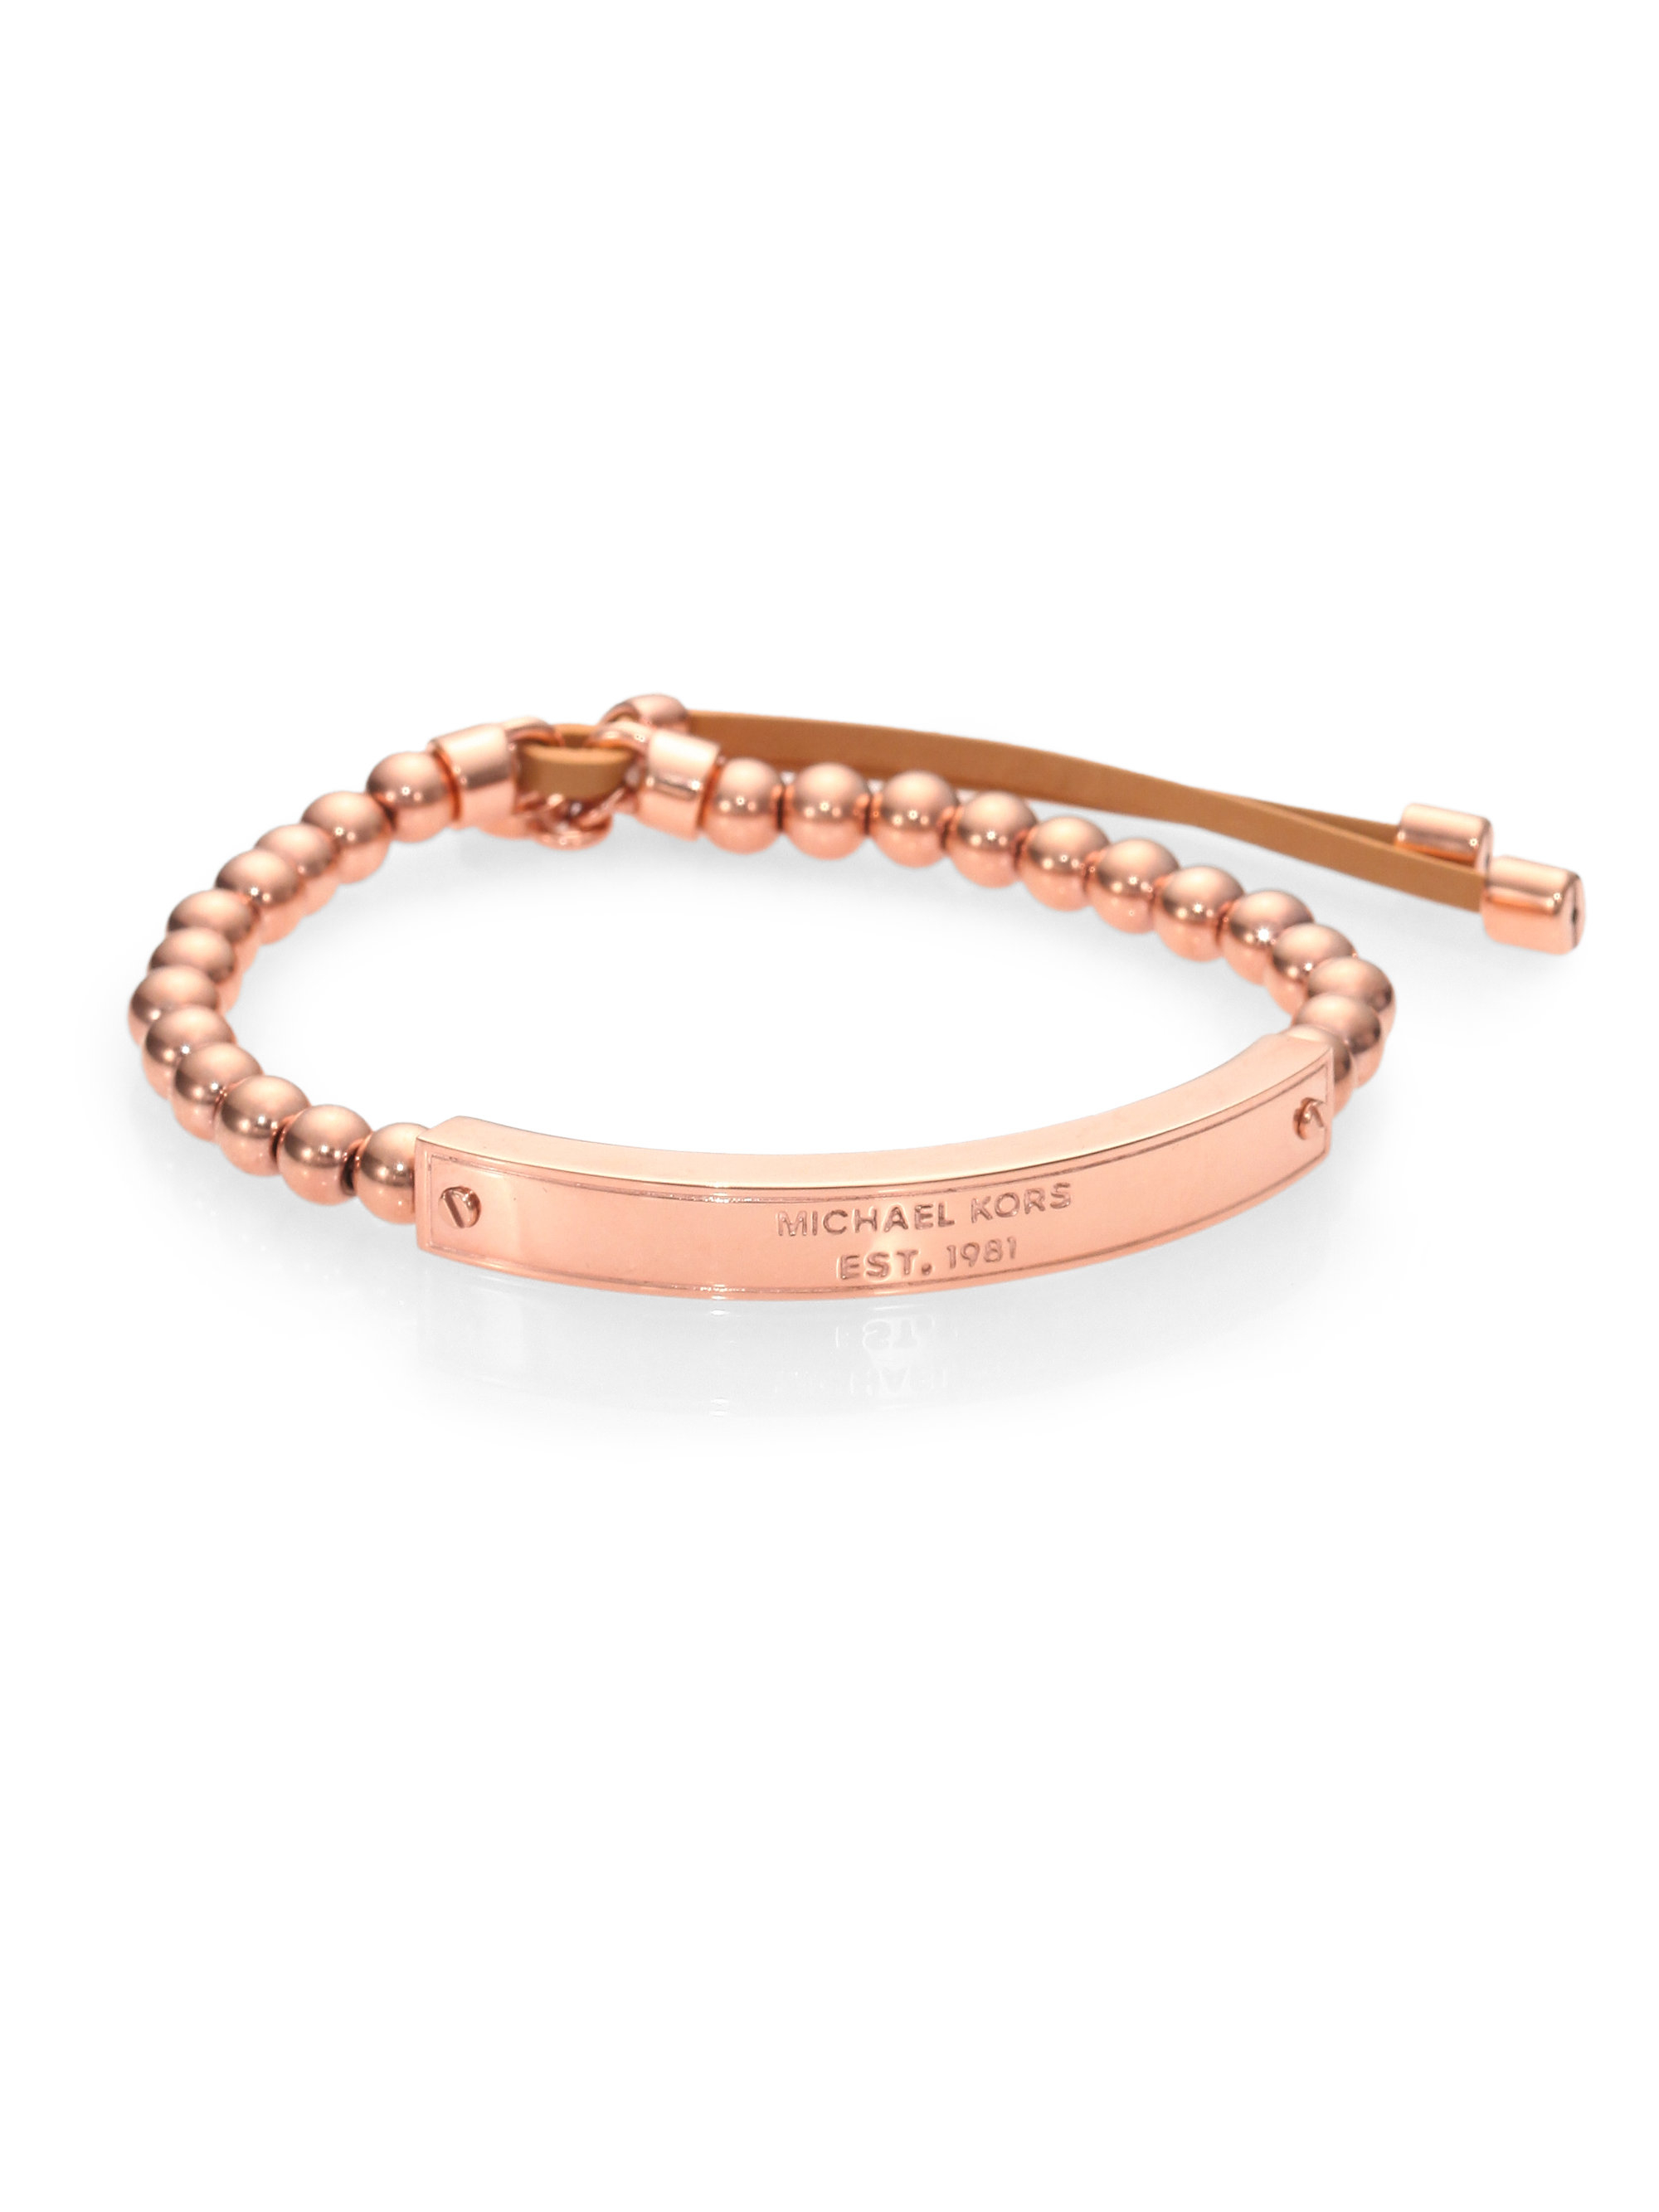 michael kors beaded leather plaque stretch bracelet in gold rose gold lyst. Black Bedroom Furniture Sets. Home Design Ideas